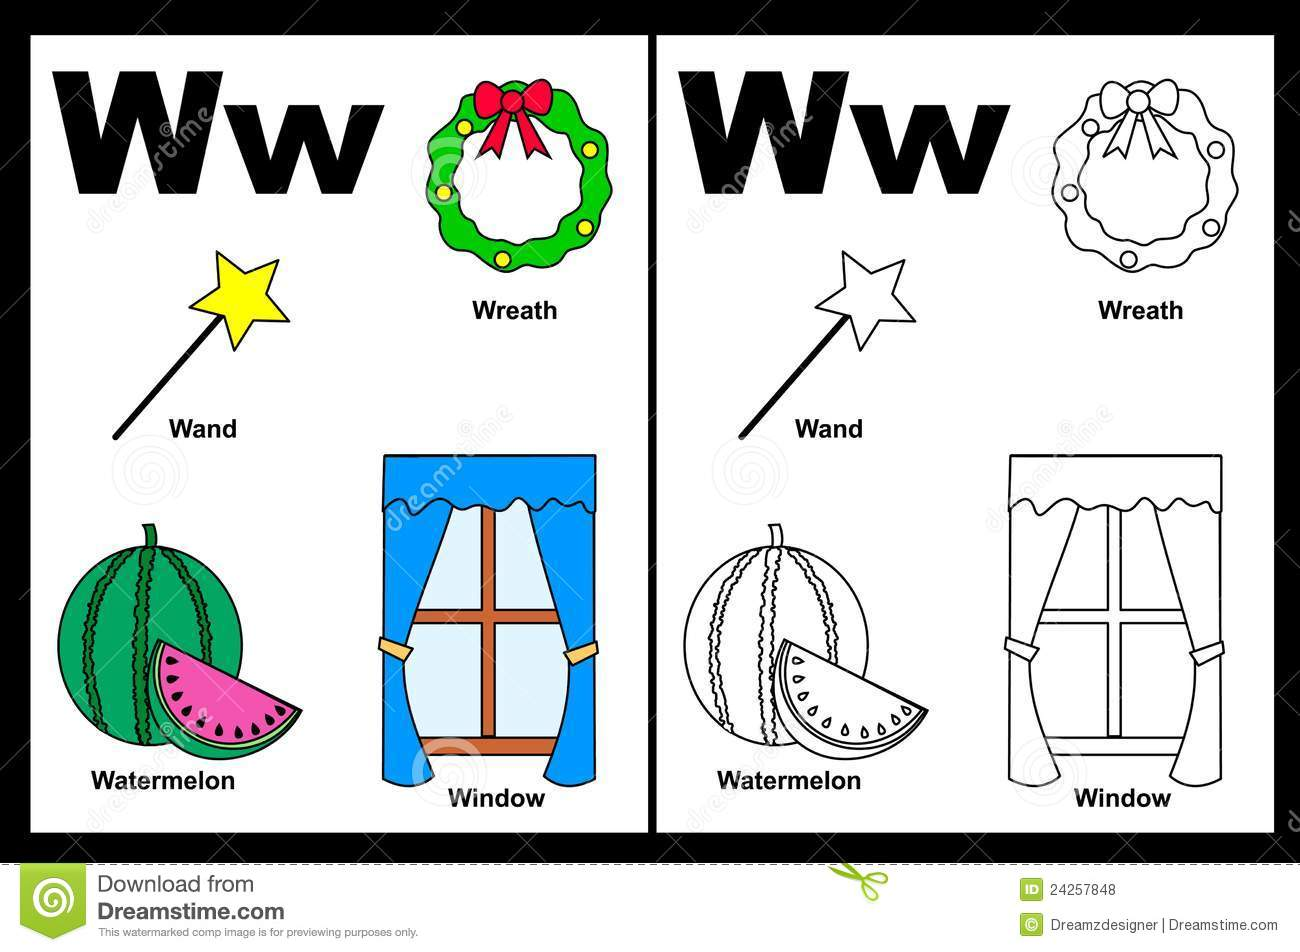 Letter W Worksheet Royalty Free Photos Image 24257848 – Letter W Worksheet